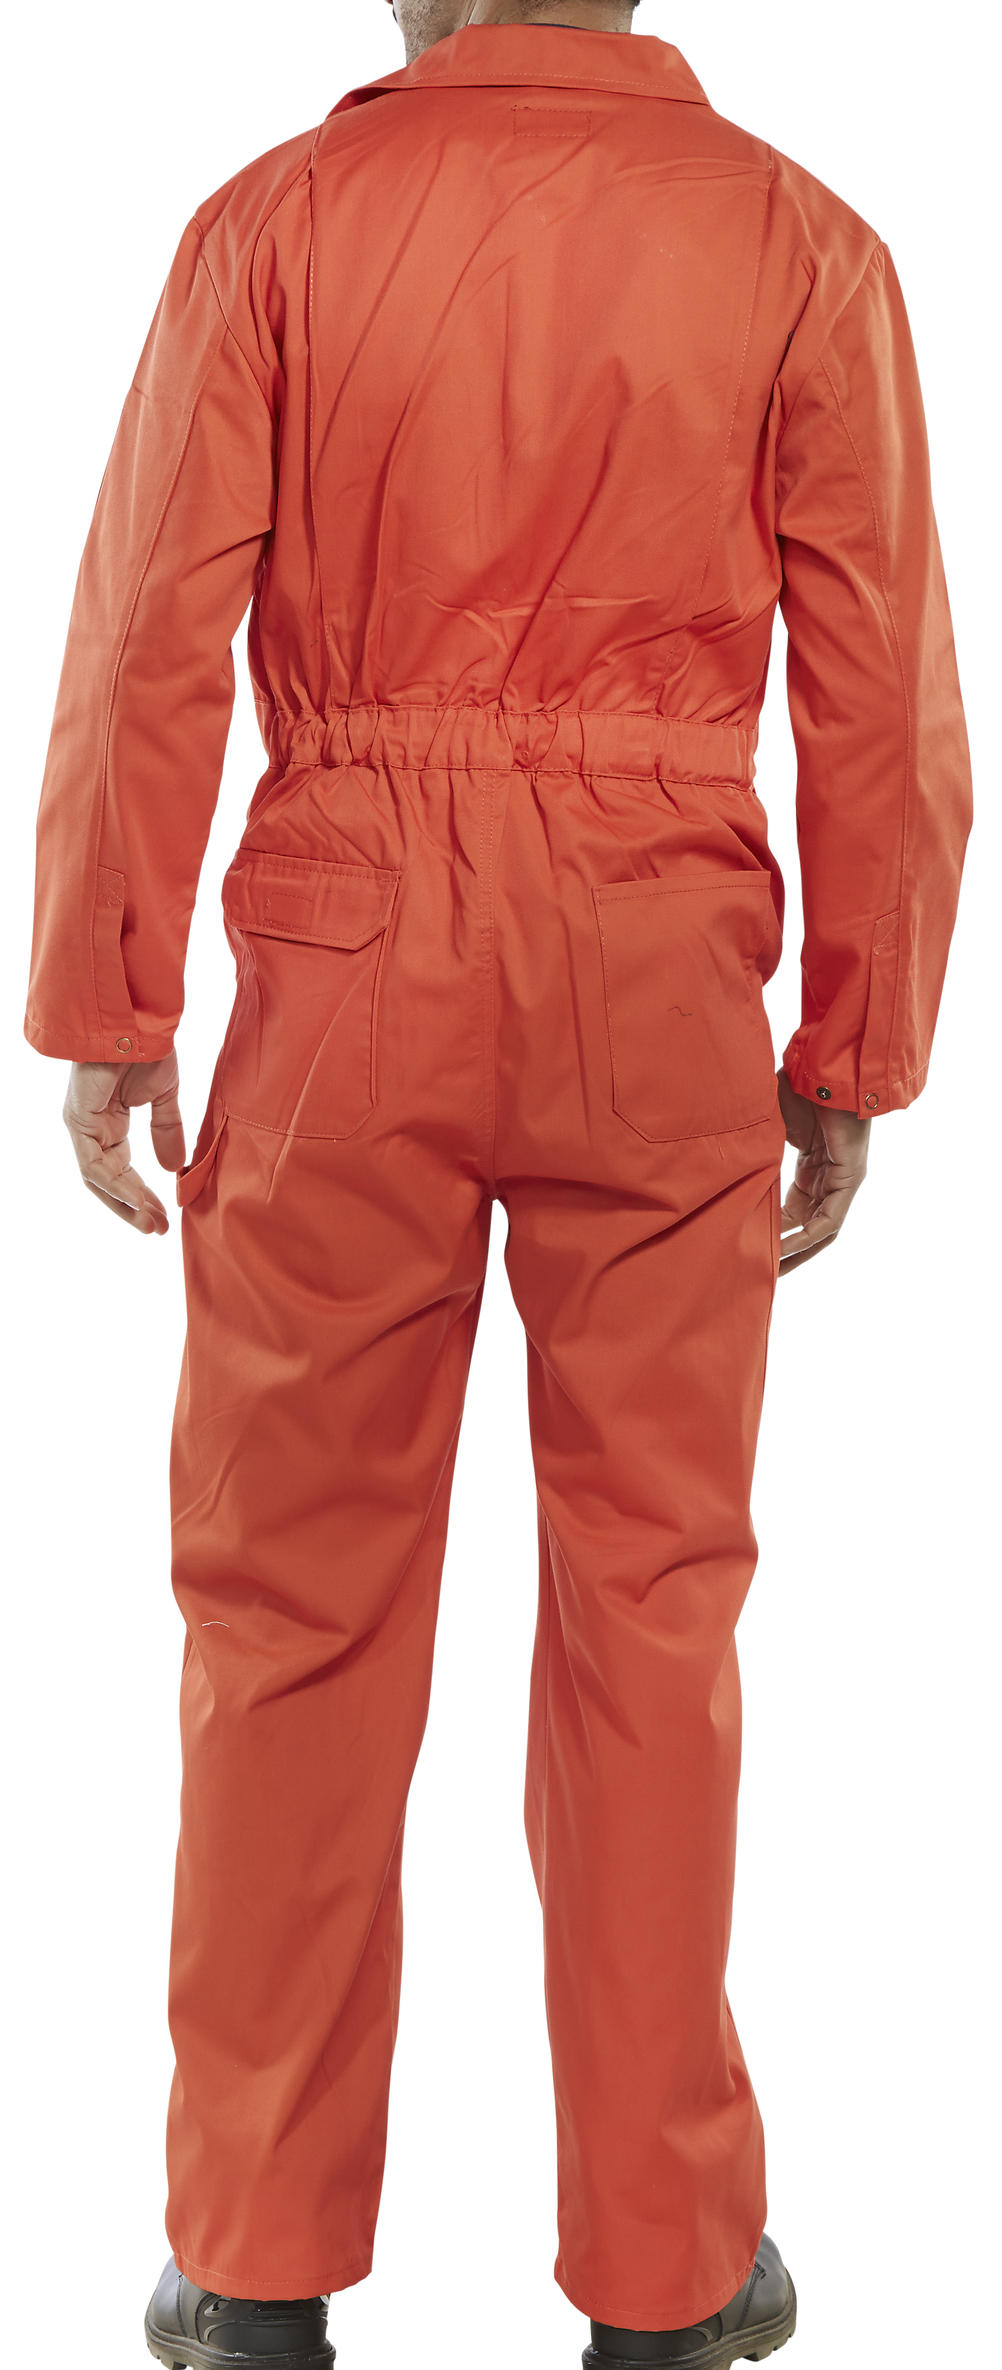 SUPER CLICK HEAVY WEIGHT BOILERSUIT - PCBSHW